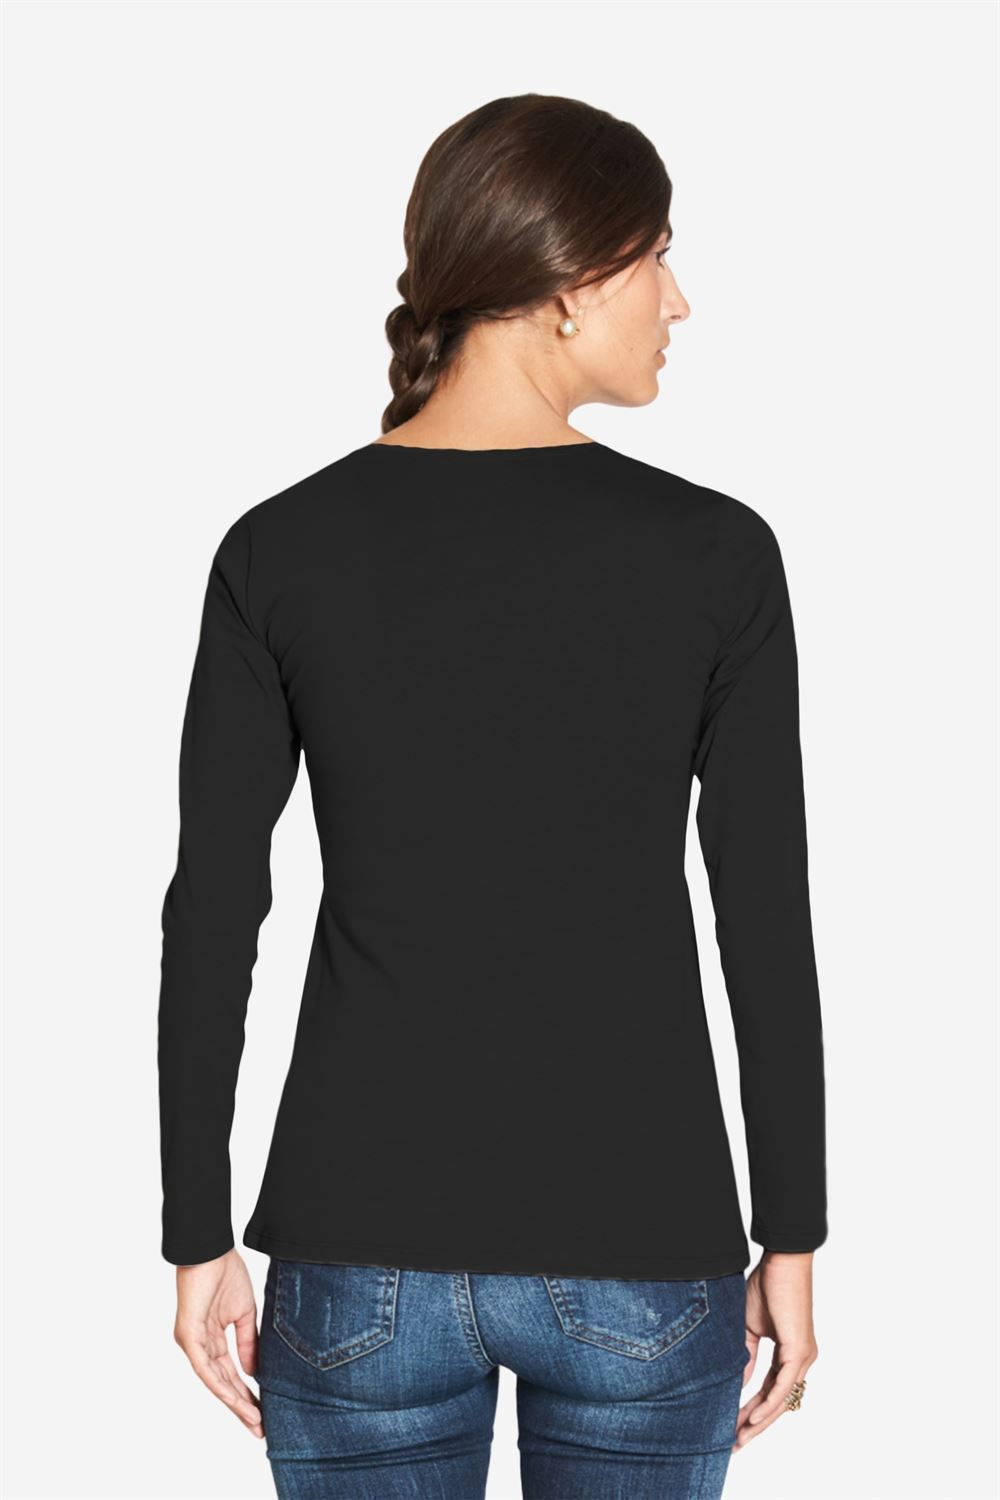 Black nursing shirt with long sleeved wrap look - Seen from behind